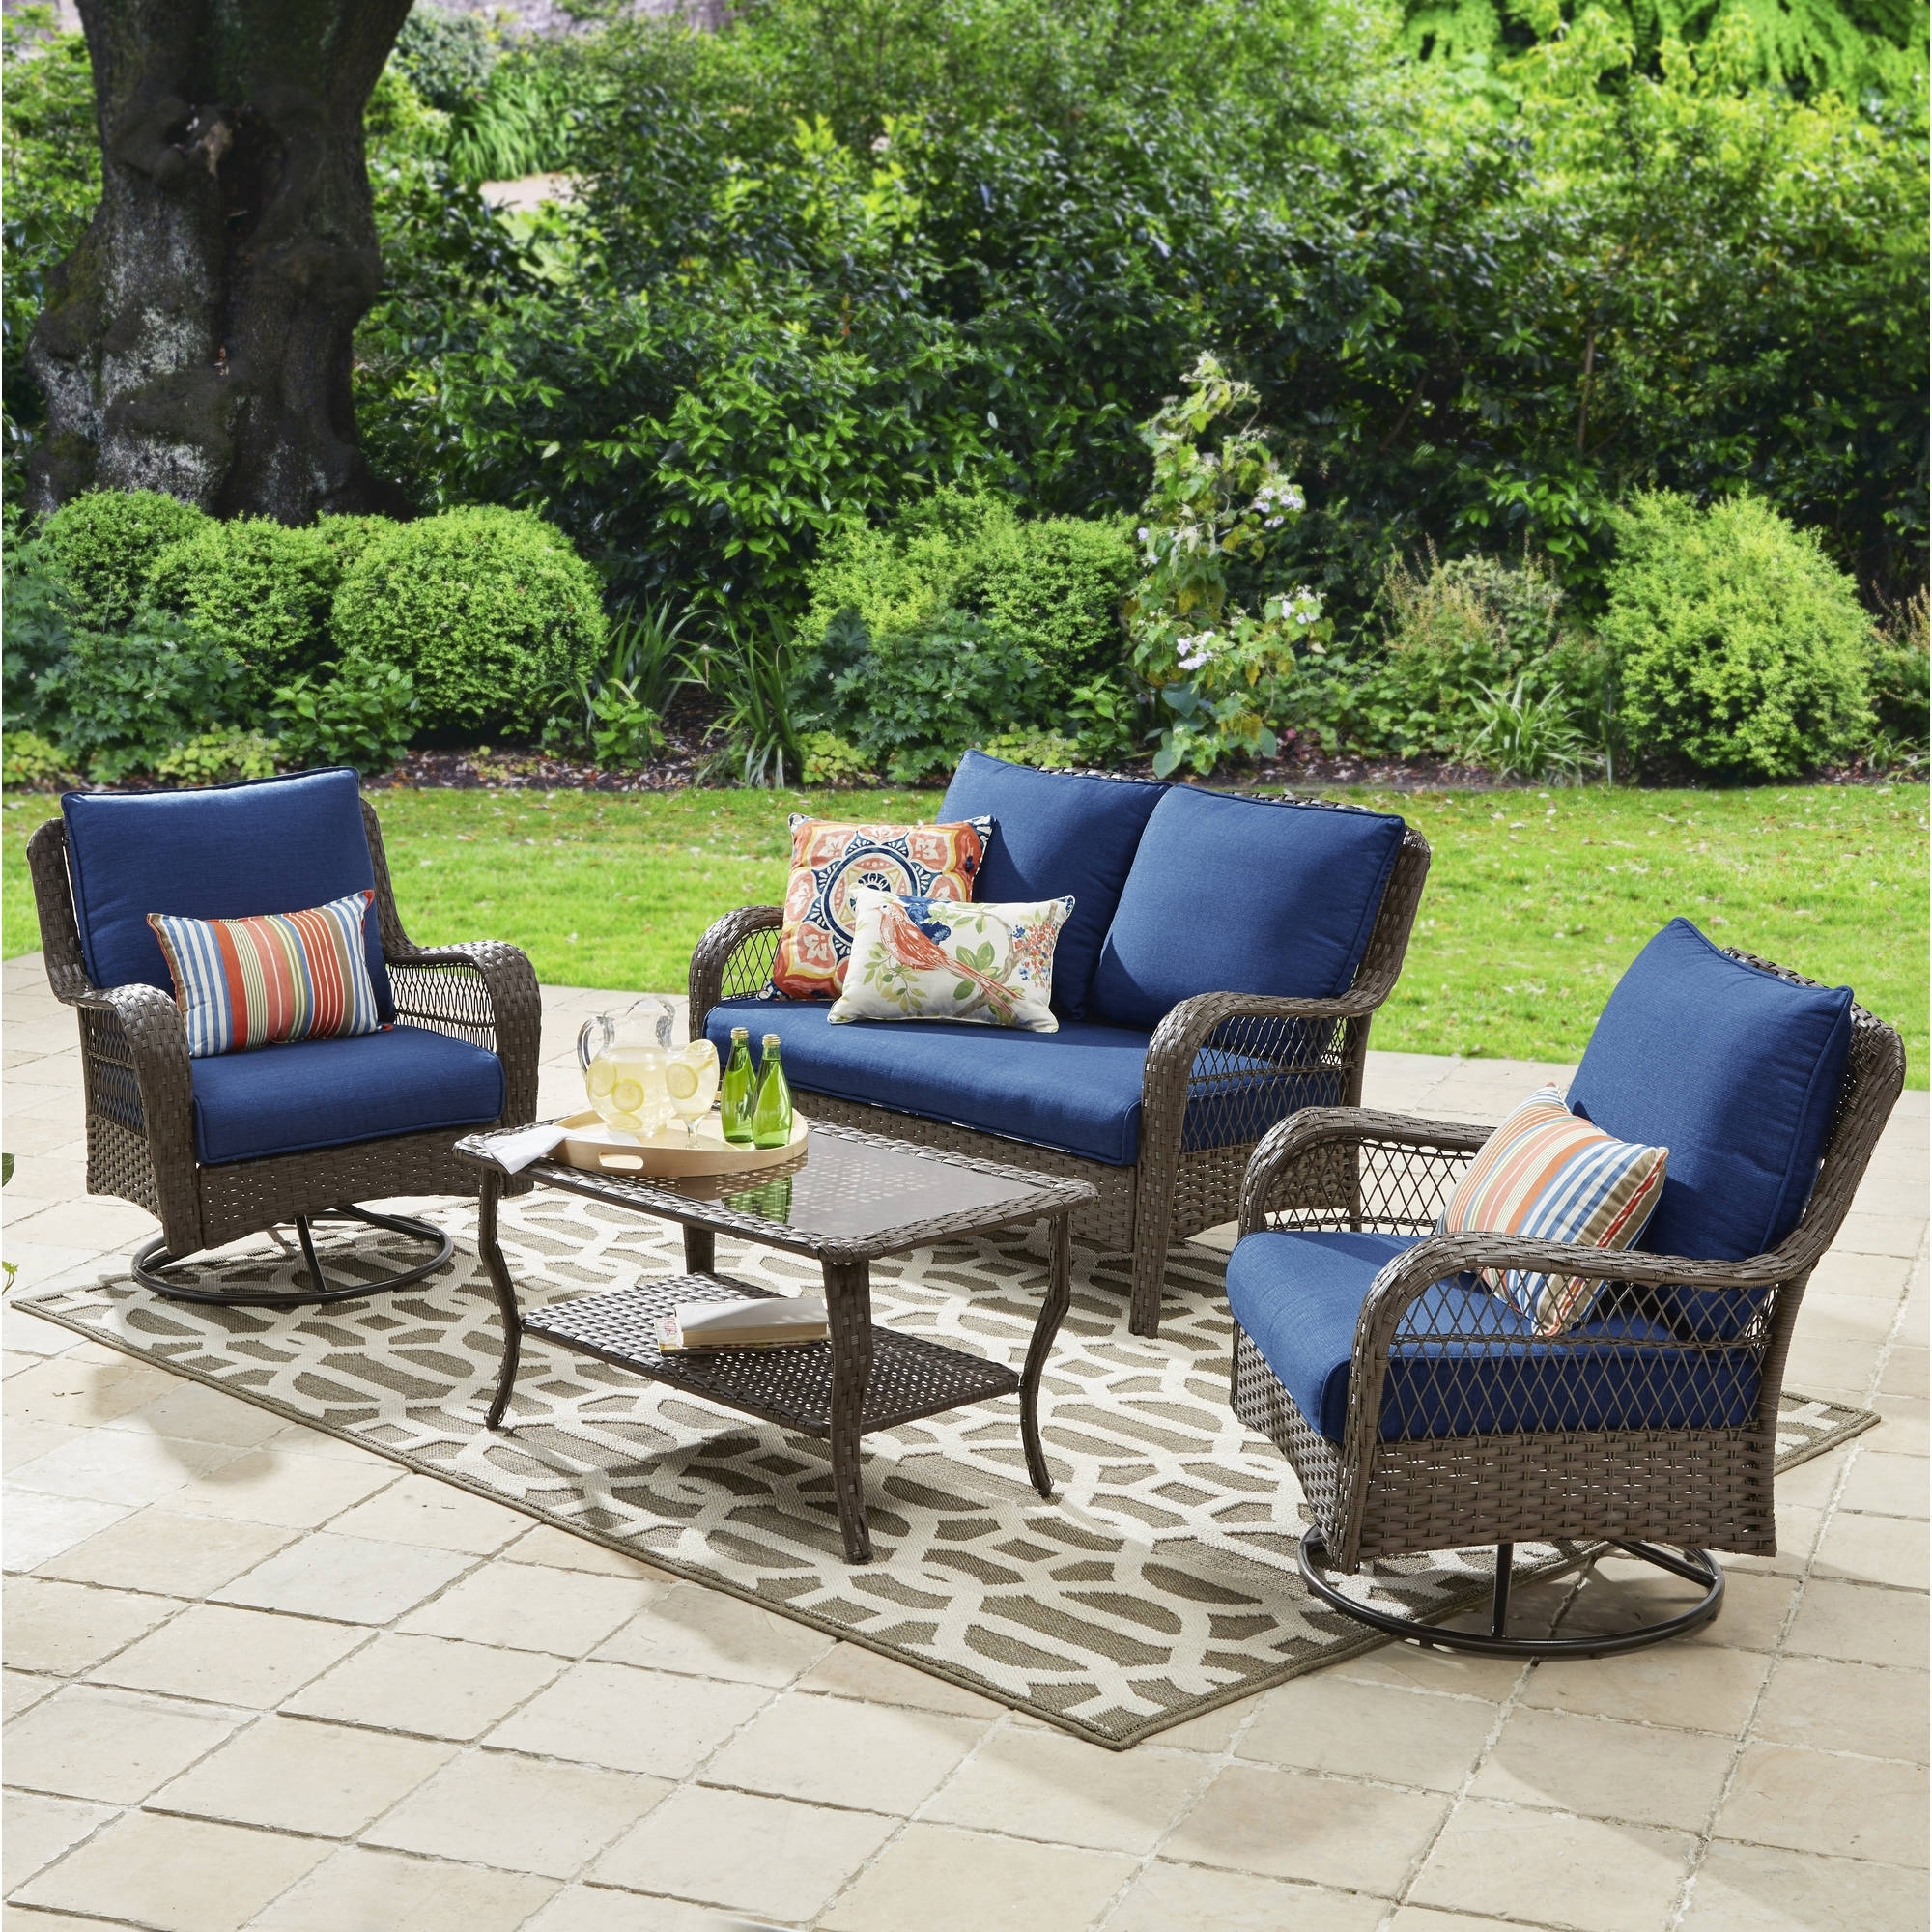 Better Homes And Gardens Colebrook 4 Piece Outdoor Conversation Set With Regard To Well Known Walmart Patio Furniture Conversation Sets (View 9 of 15)